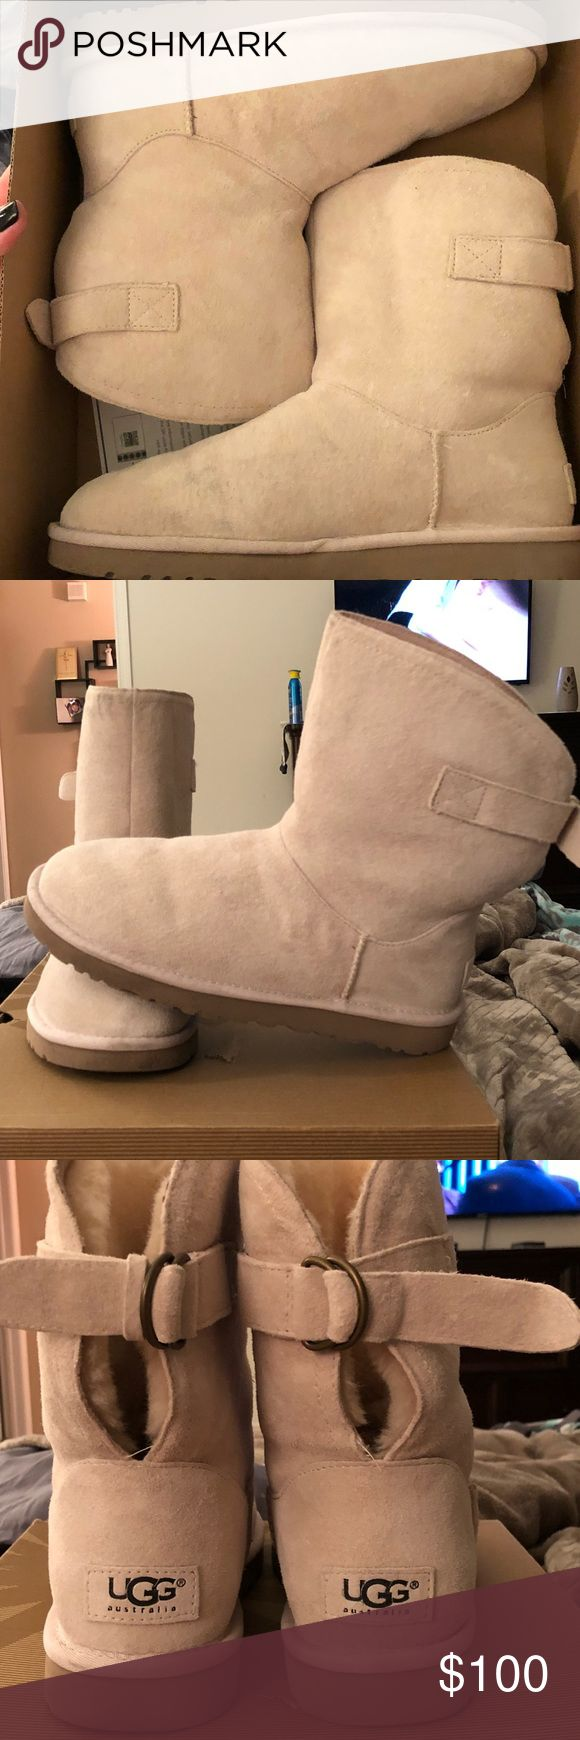 Remora Uggs Remora style uggs with buckles. They are the Fresh Snow color in a size 8. They are water resistant and have only been worn once. The right buckle does not have a small strap to secure the larger strap. Box is included. UGG Shoes Ankle Boots & Booties